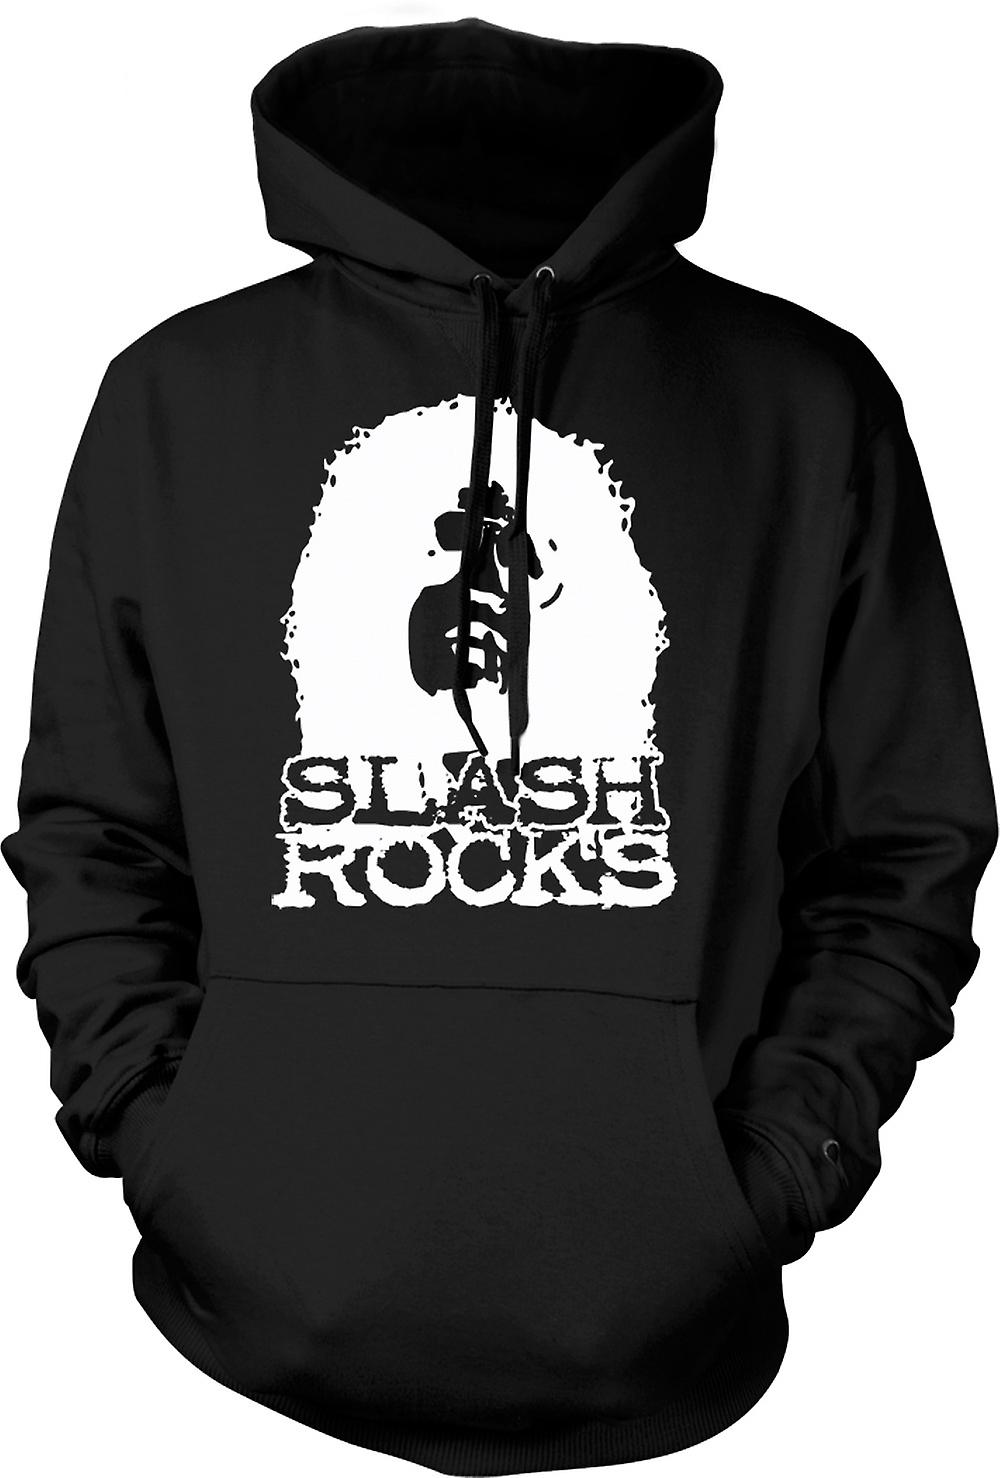 Kids Hoodie - Slash Guitar Rock - Guns n Roses